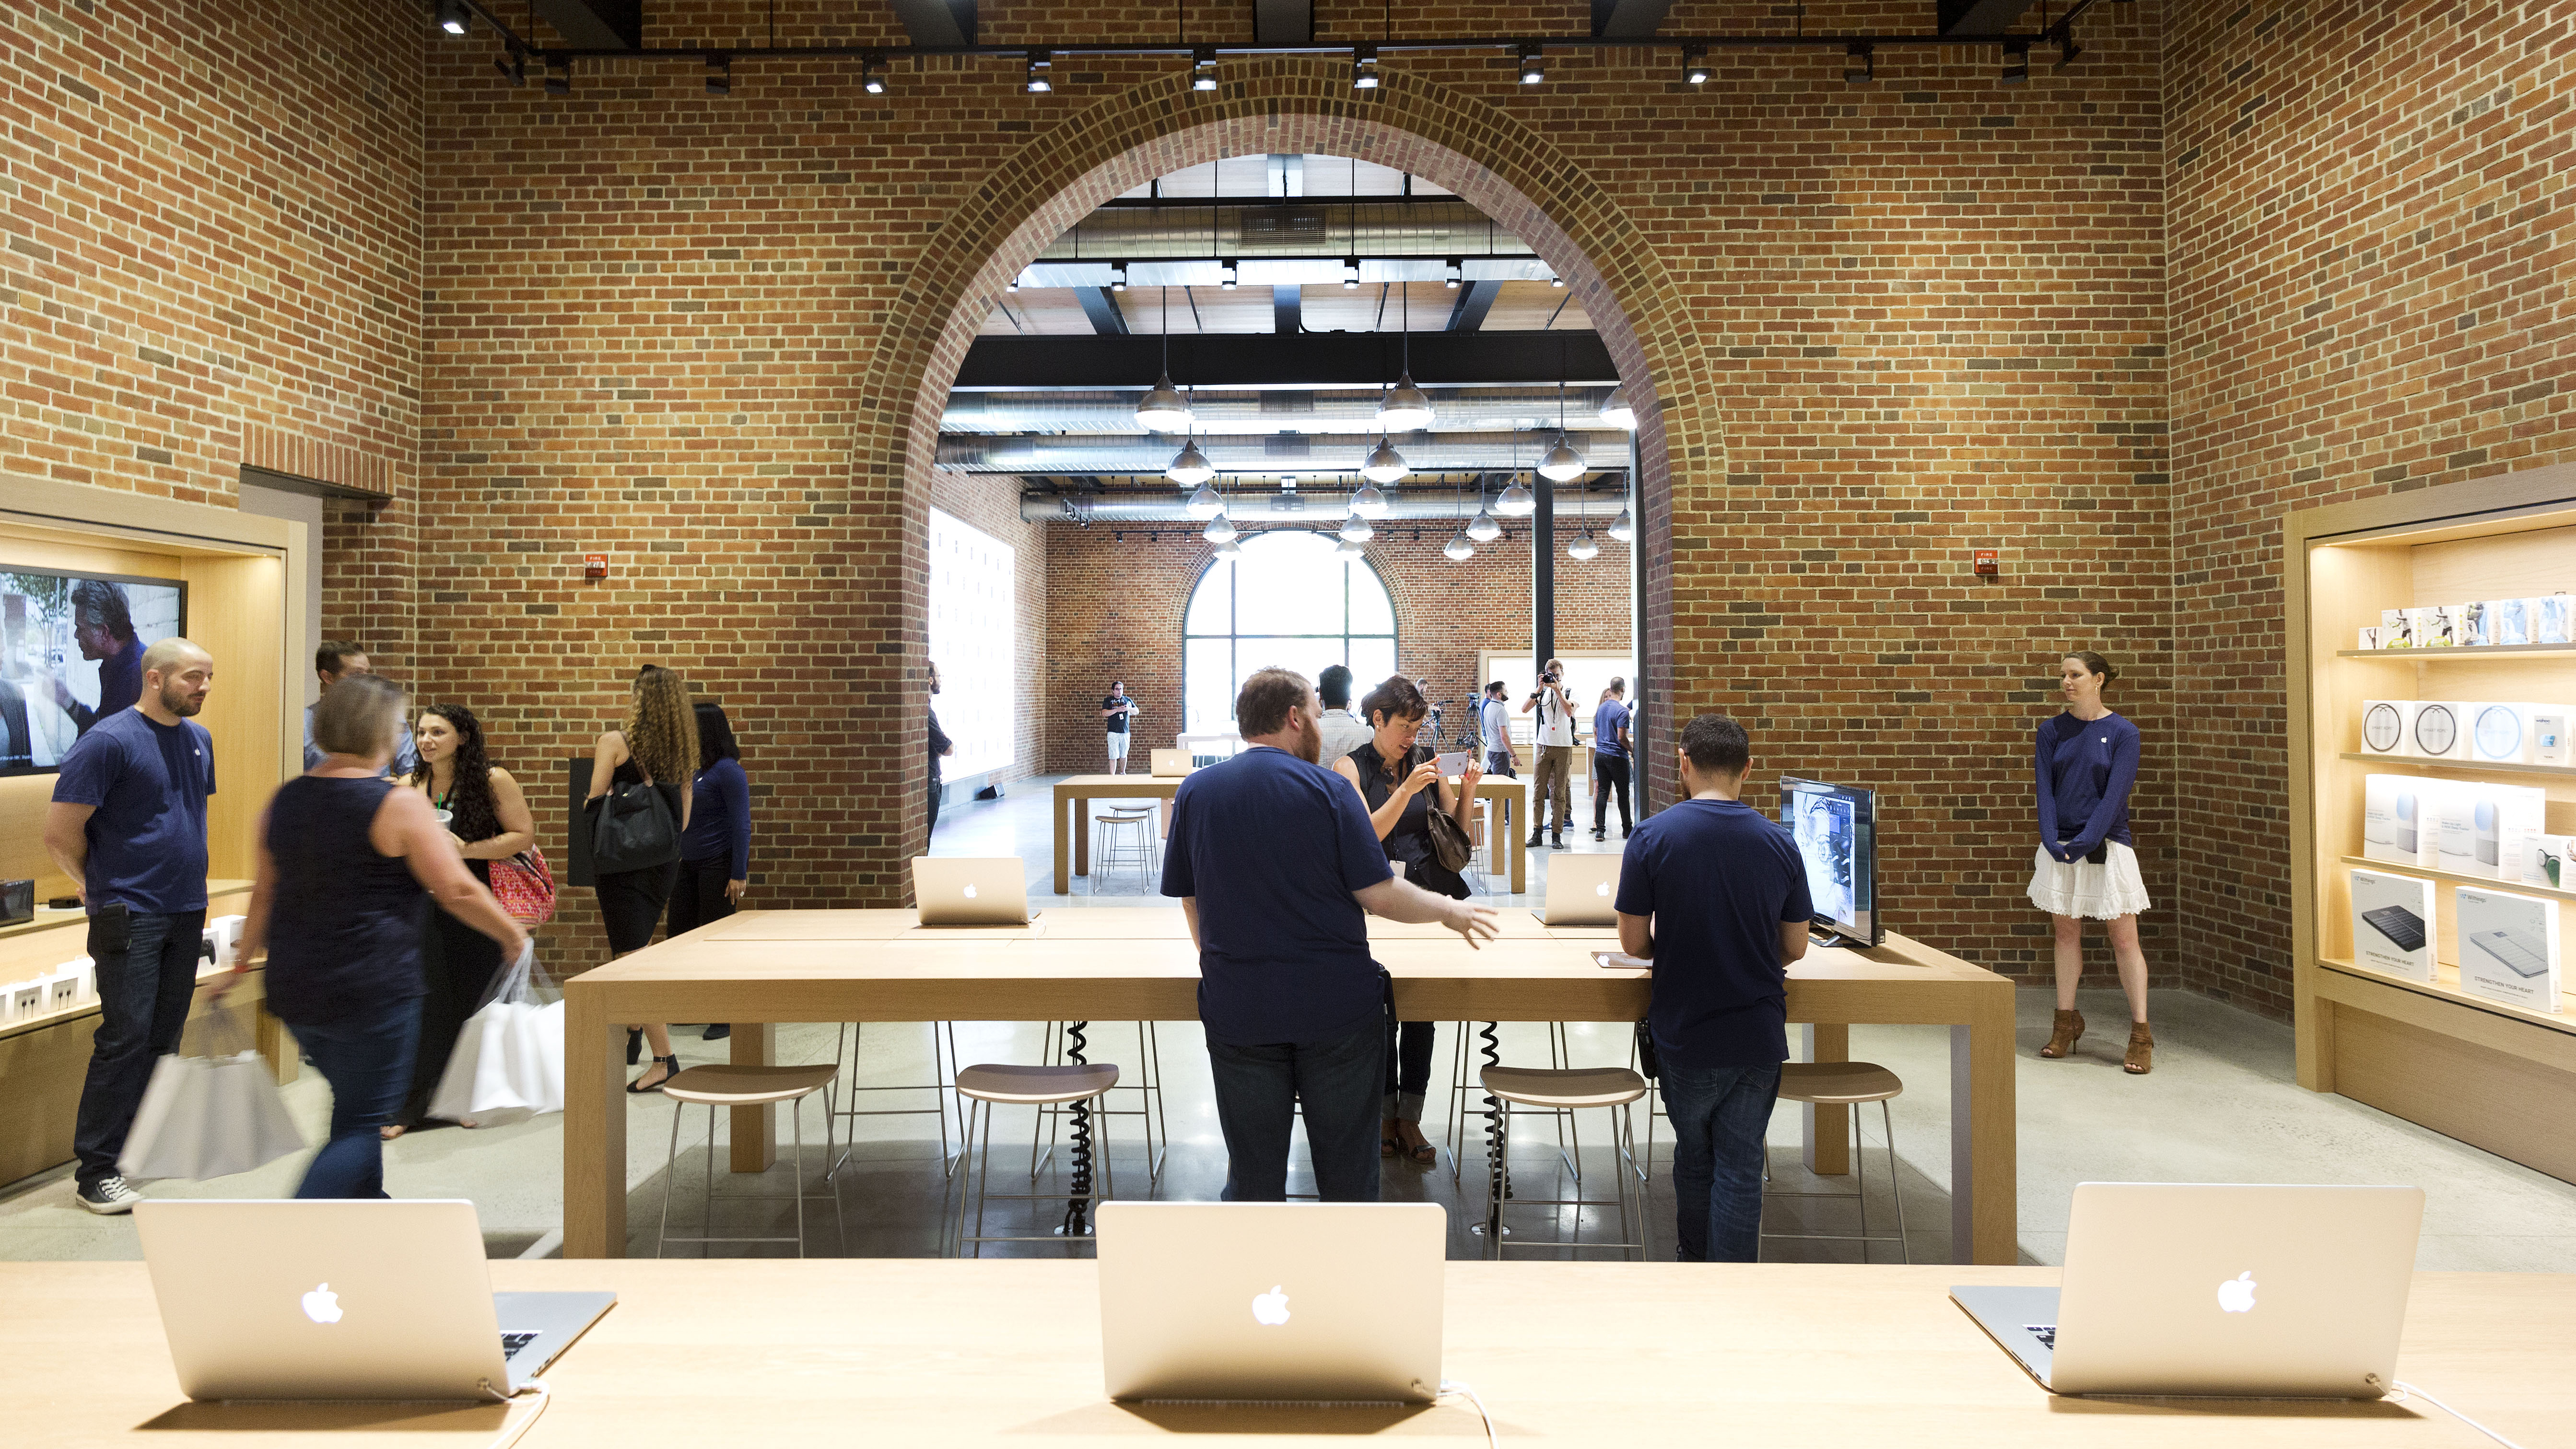 A new Apple Store is open for a media preview, Thursday, July 28, 2016 in the Williamsburg section in the Brooklyn borough of New York. The store opens to the public Saturday. (AP Photo/Mark Lennihan)